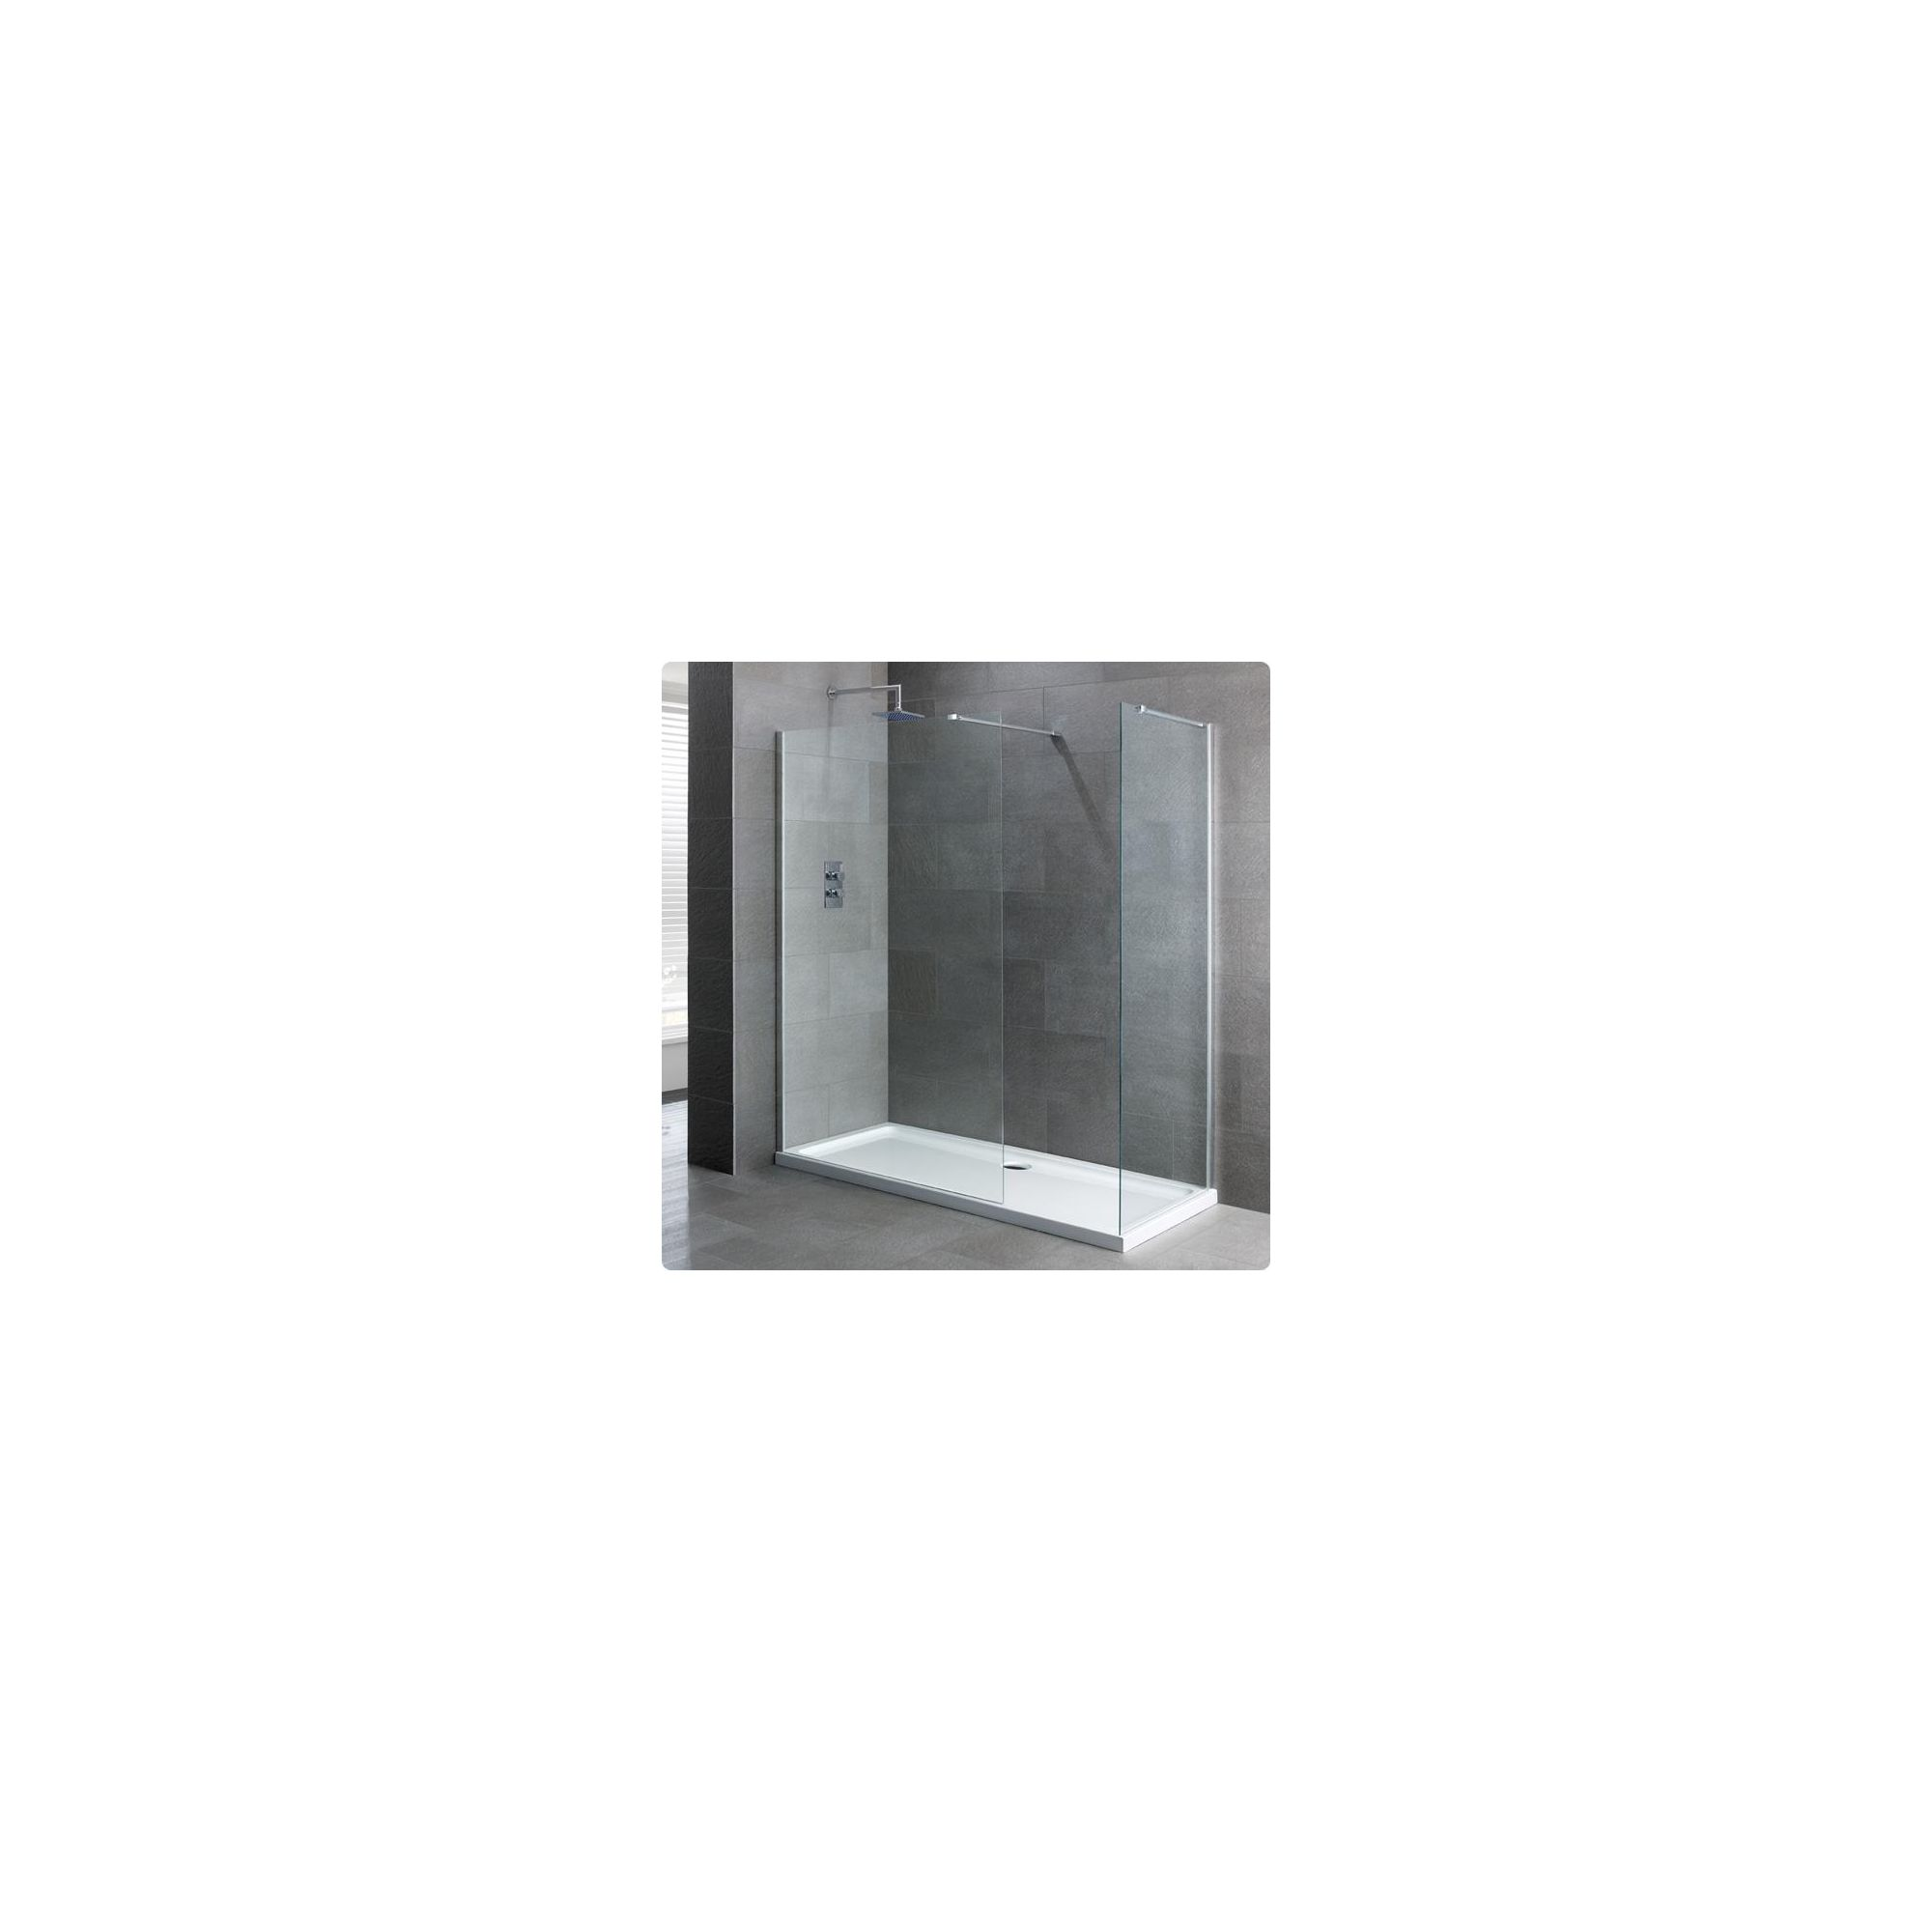 Duchy Select Silver Walk-In Shower Enclosure 1200mm x 800mm, Standard Tray, 6mm Glass at Tescos Direct